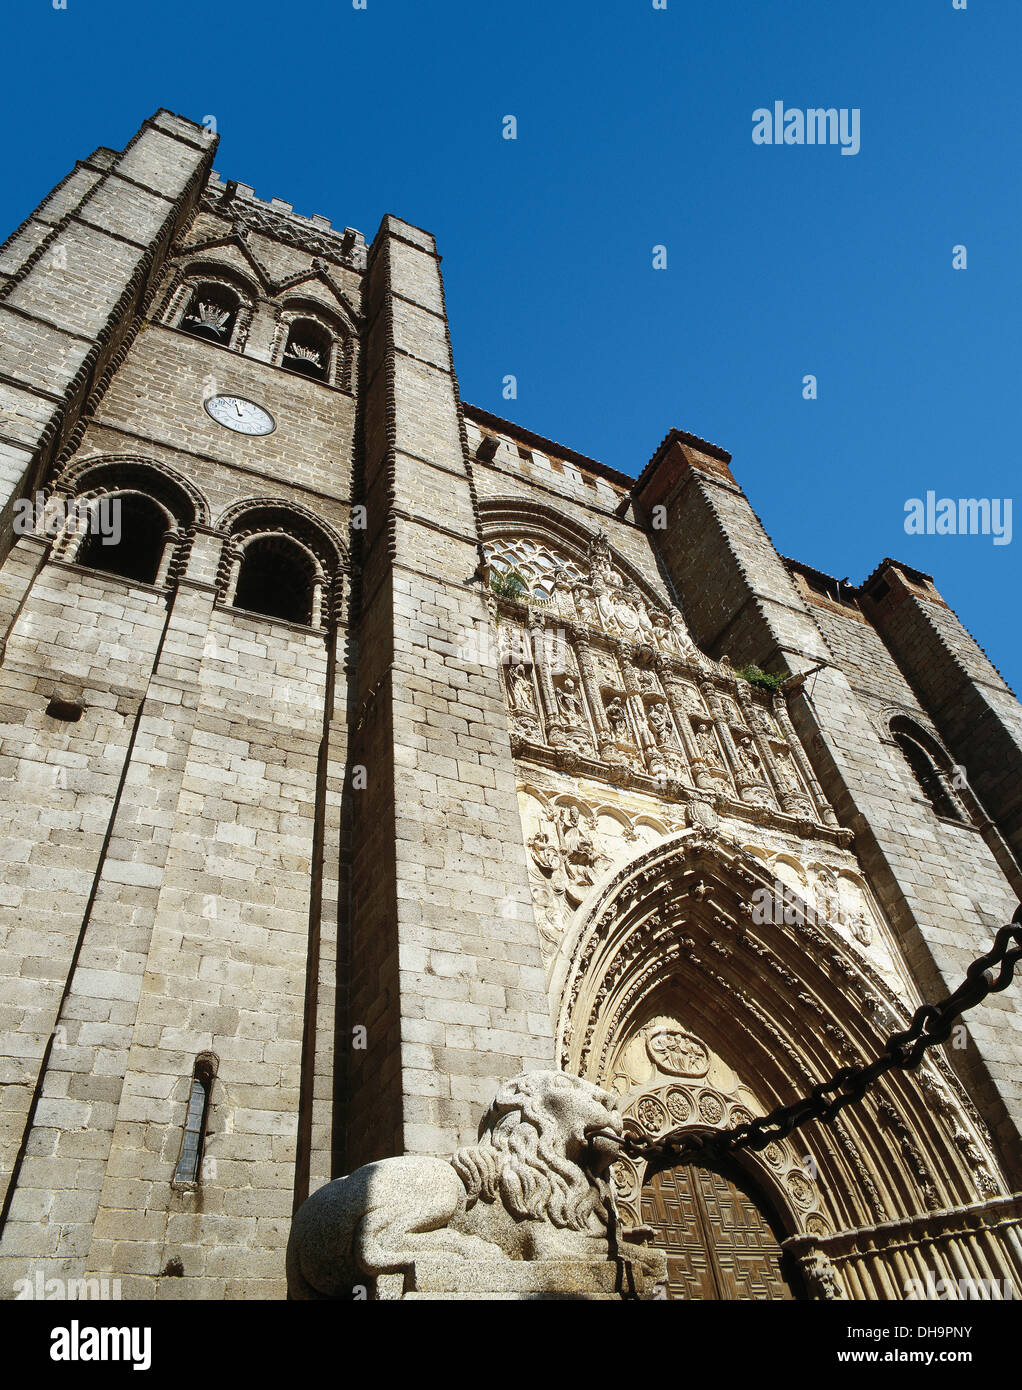 Gothic style. Spain. Avila. St. Salvador cathedral. Facade. - Stock Image